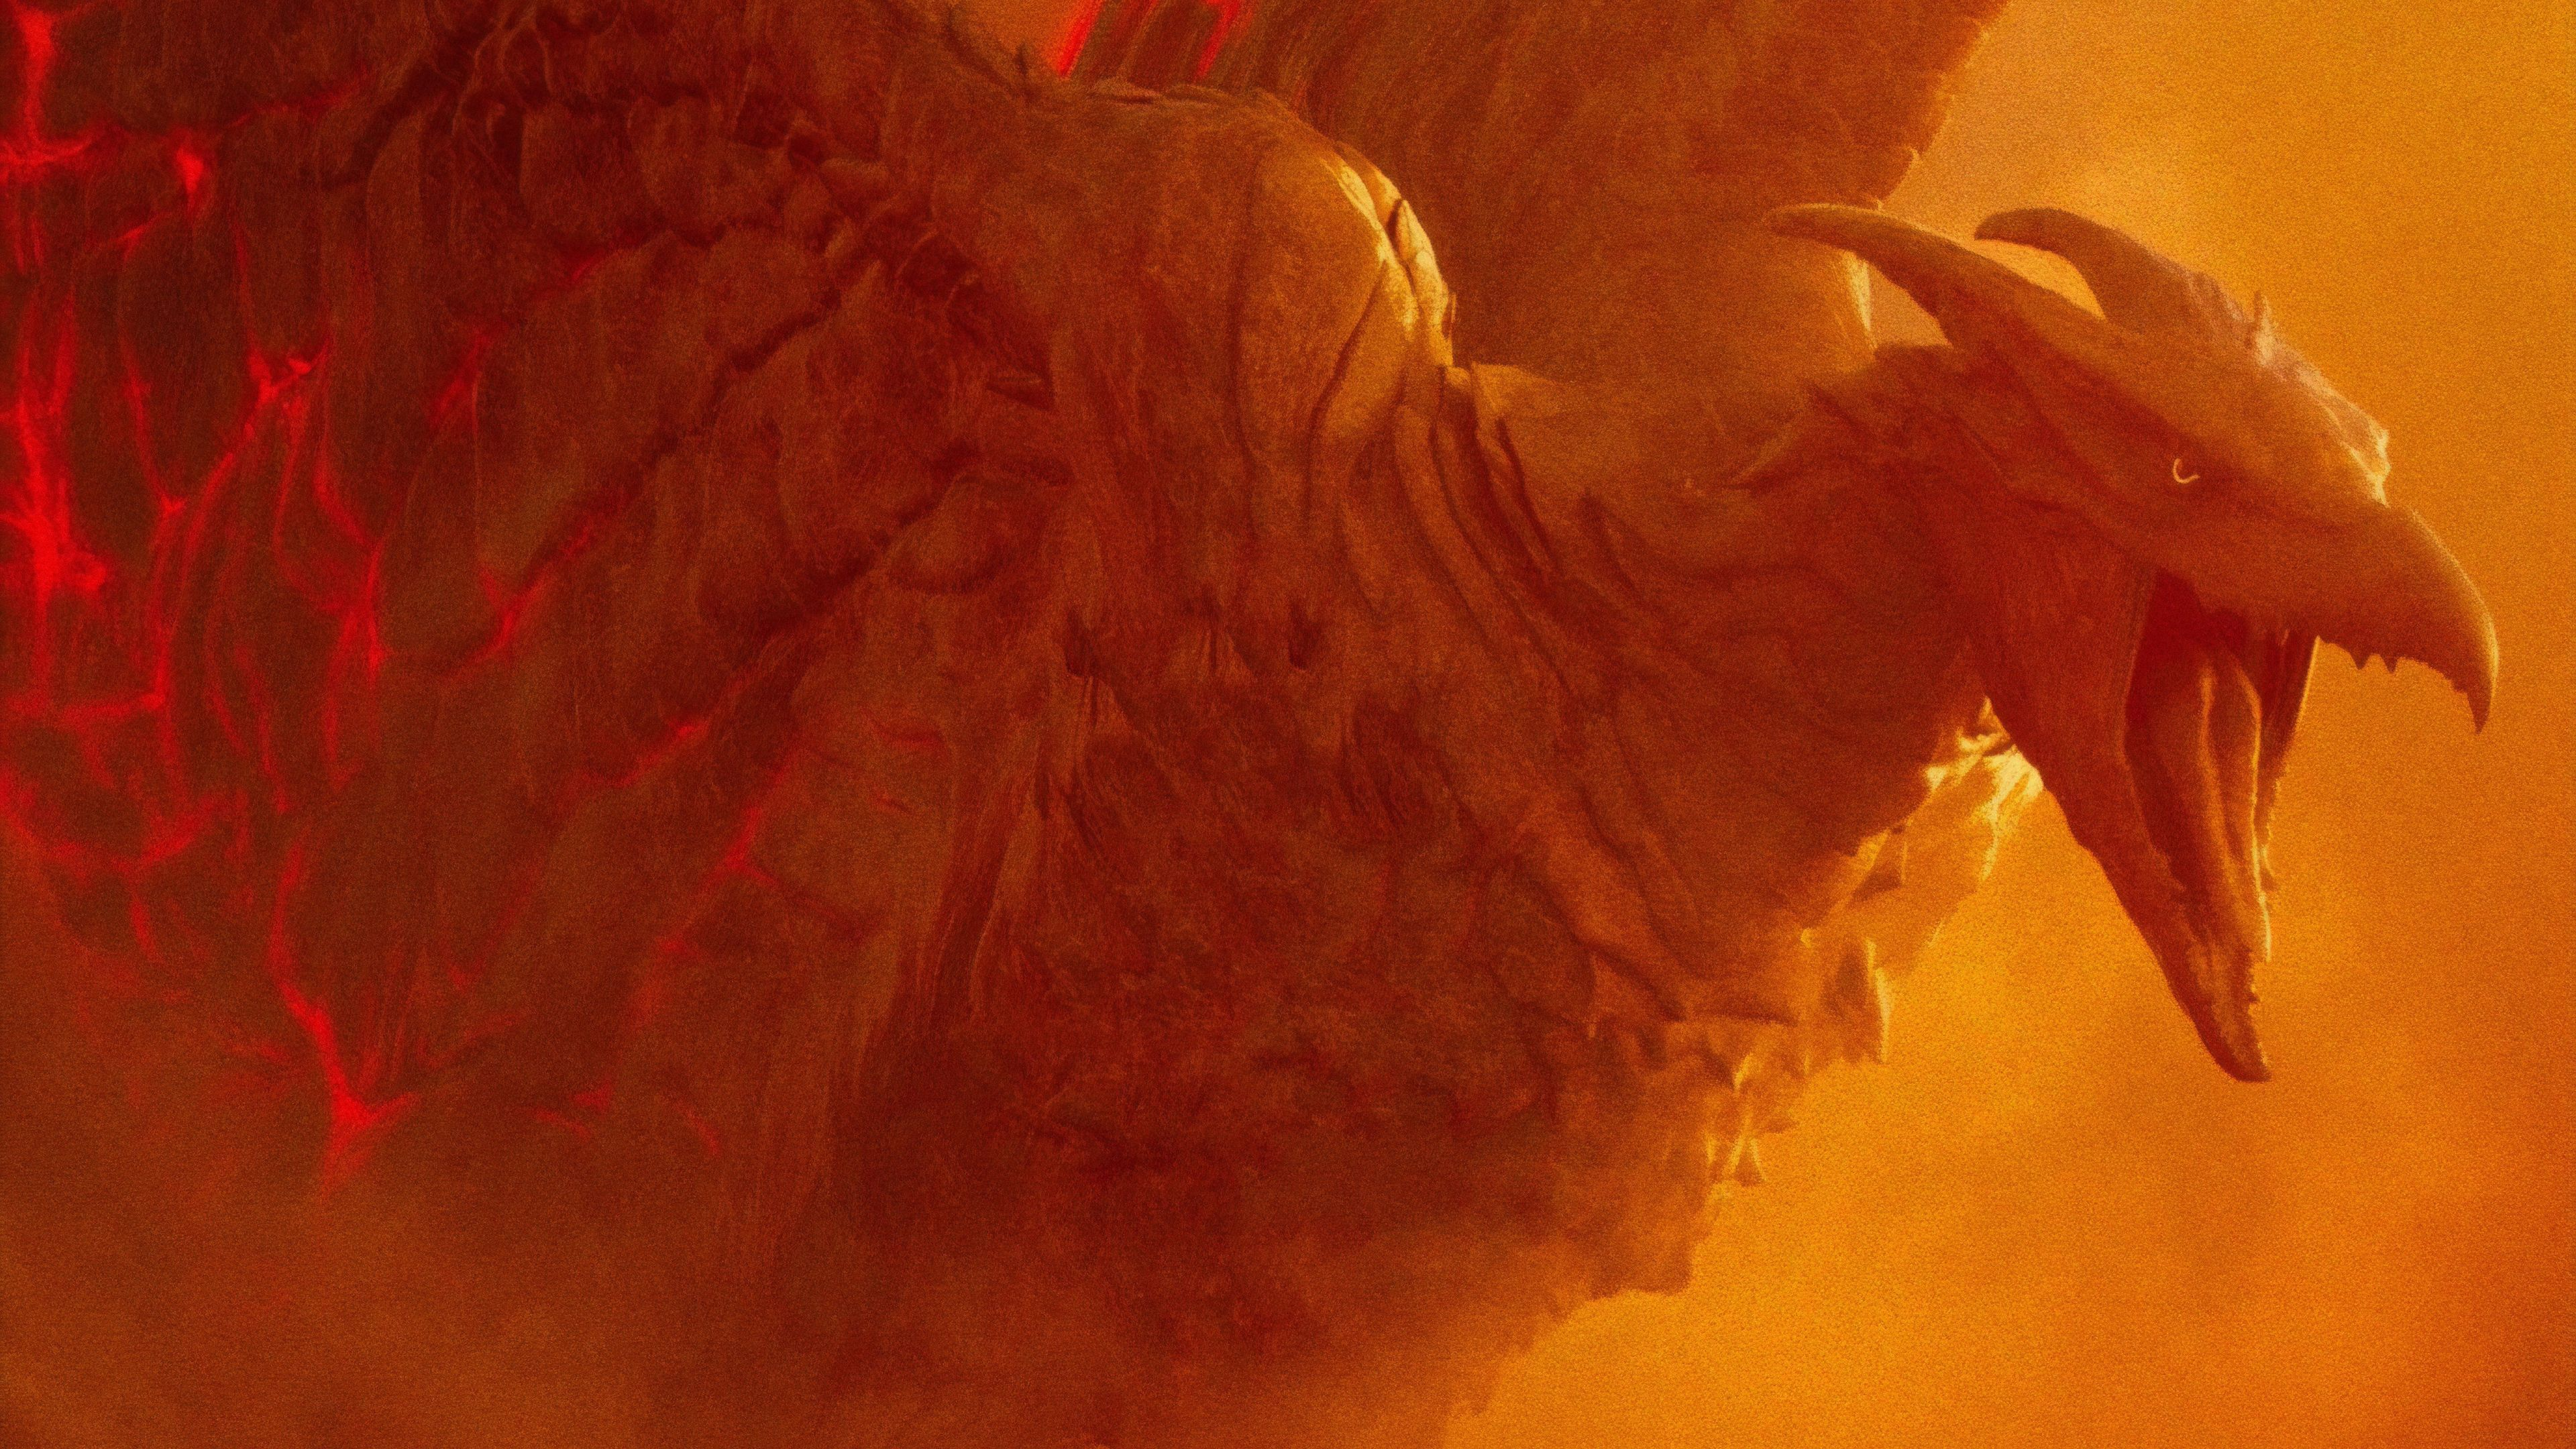 Rodan Godzilla King Of The Monsters 4k Poster Wallpapers Movies Wallpapers Hd Wallpapers Godzilla King Of The Monsters Wallp Godzilla Rodan Movie Wallpapers